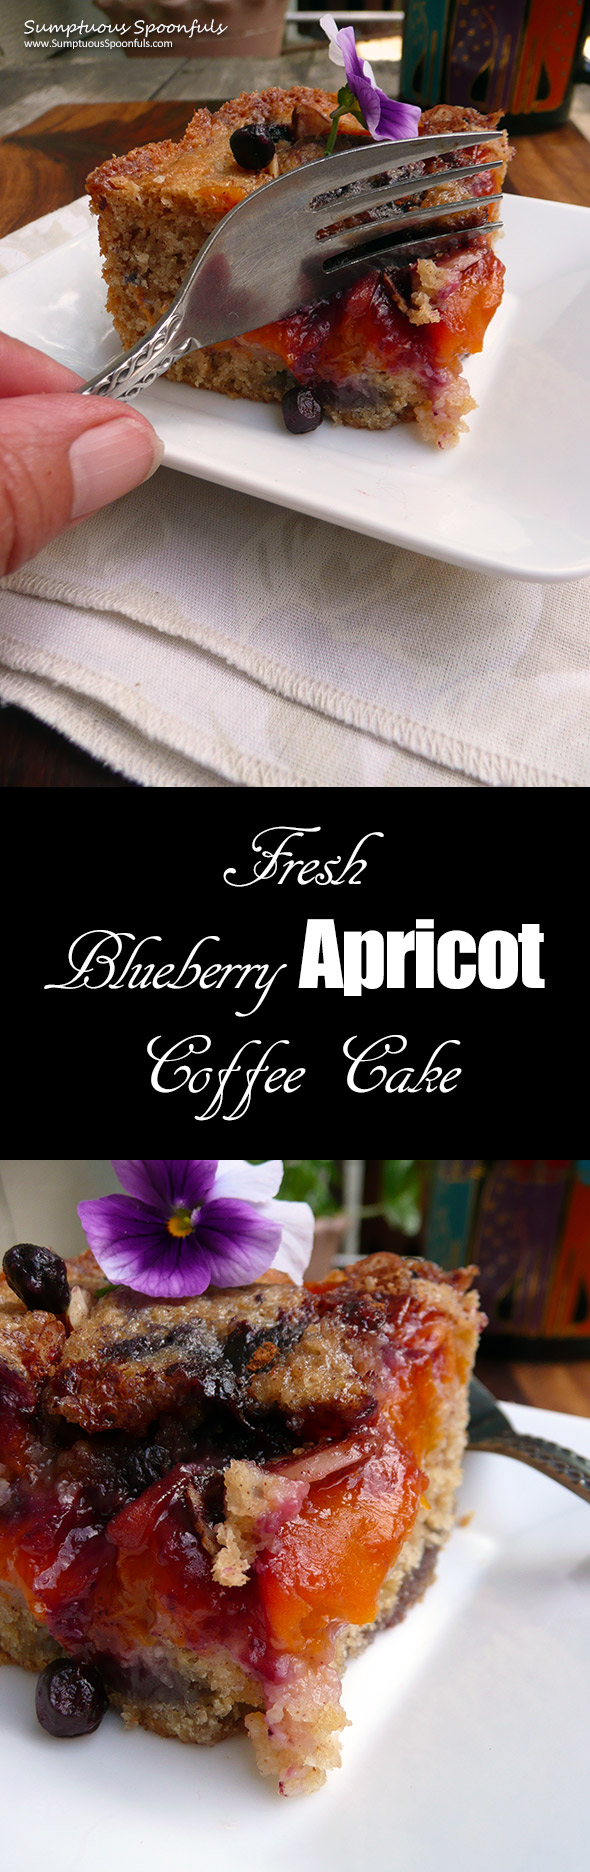 Blueberry Apricot Coffee Cake ~ Sumptuous Spoonfuls #easy #breakfast #cake #recipe